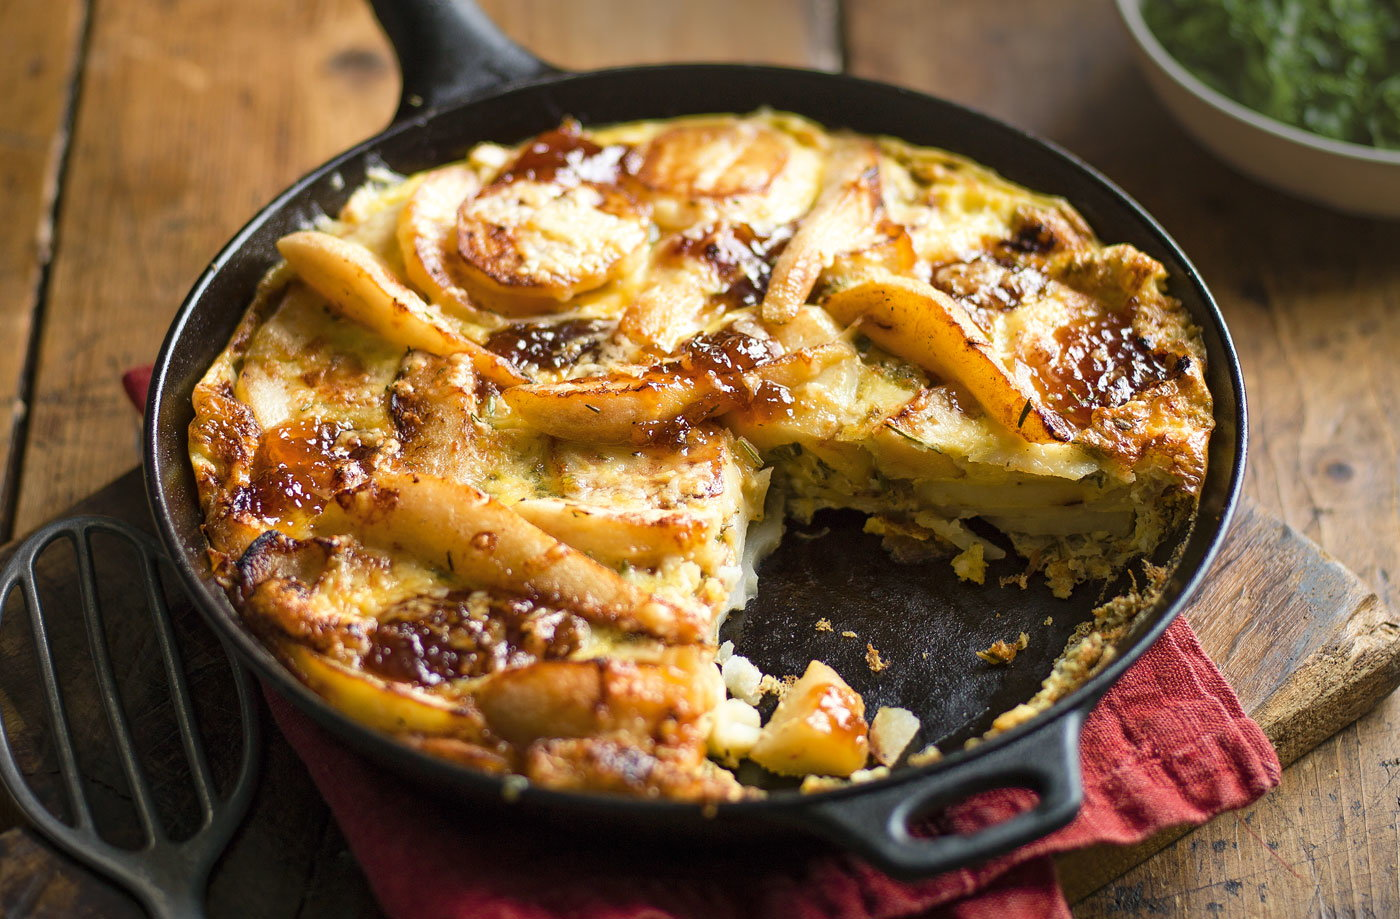 Caramelised pear and onion frittata recipe